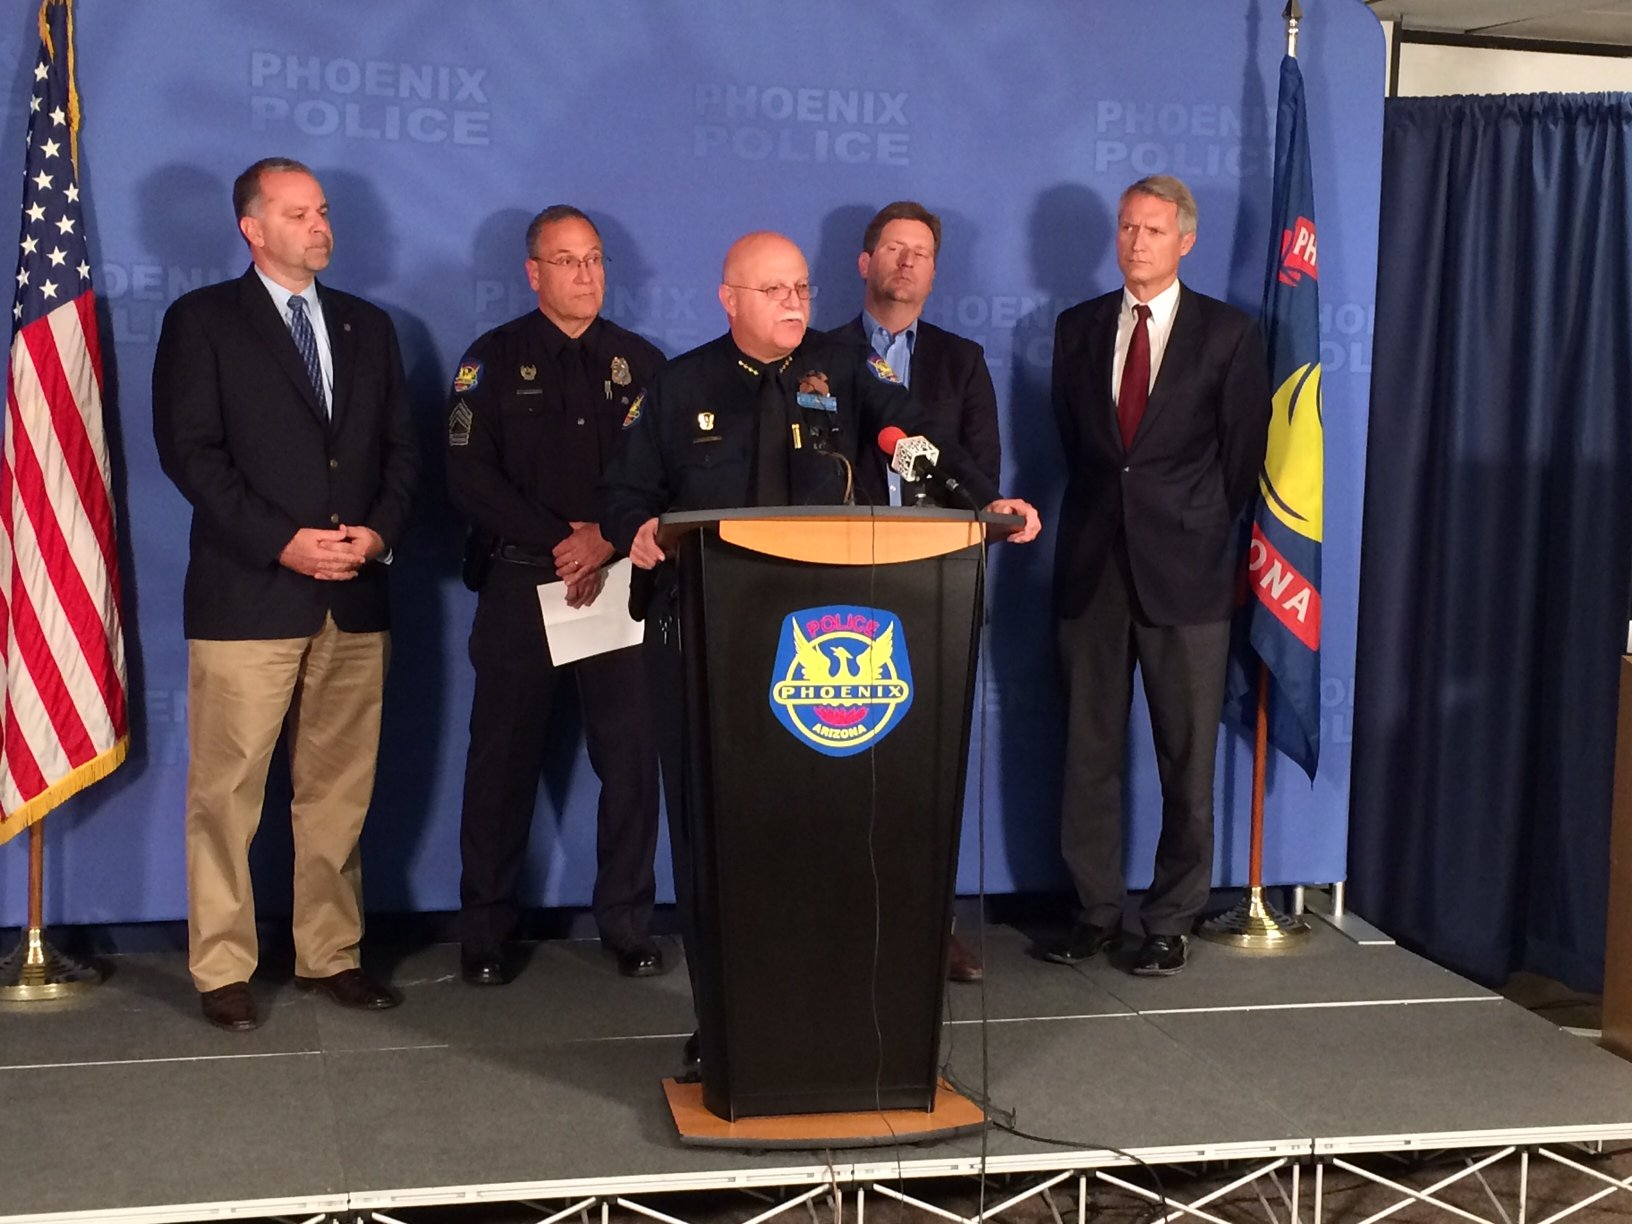 Saturday's press conference at Phoenix police headquarters. (Source: CBS 5 News)